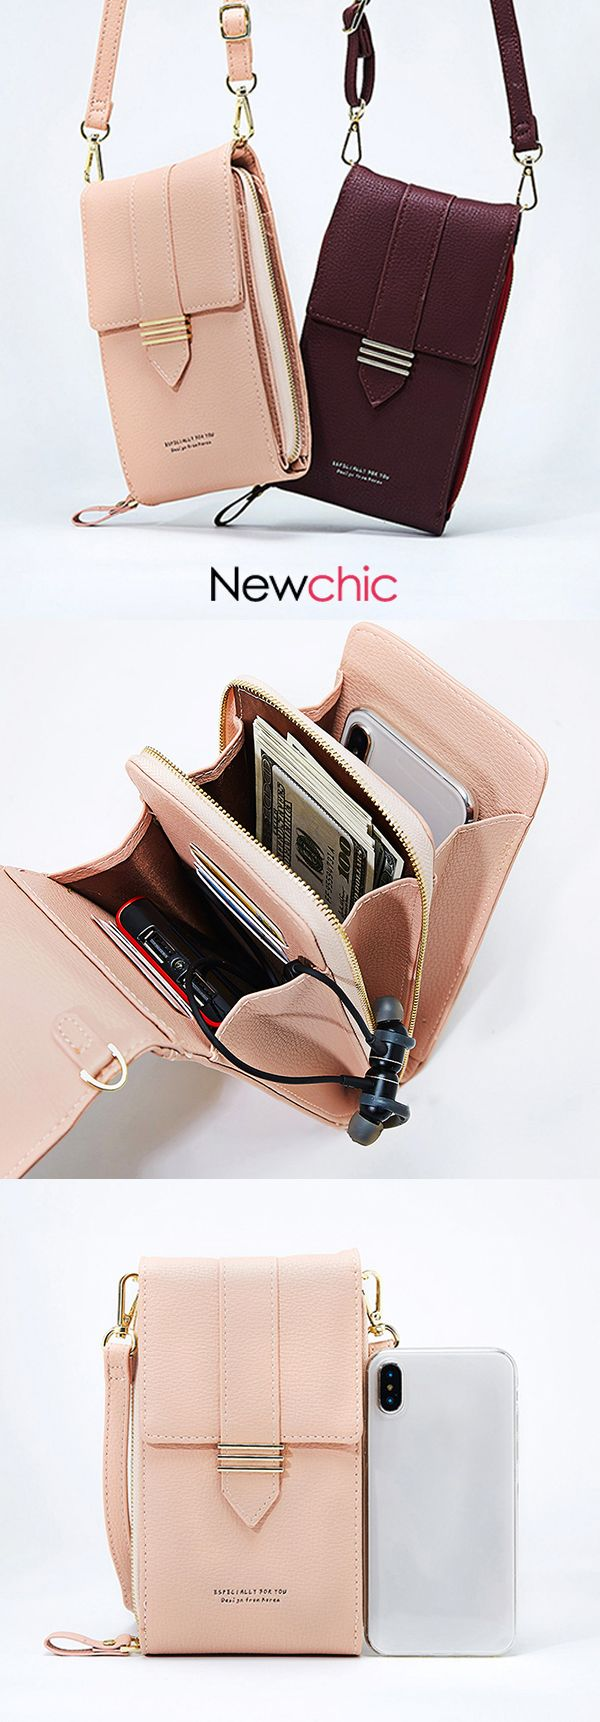 【US$ 22.39】Women Faux Leather Multi-pockets Shoulder Bag 5.5 Inches Crossbod…